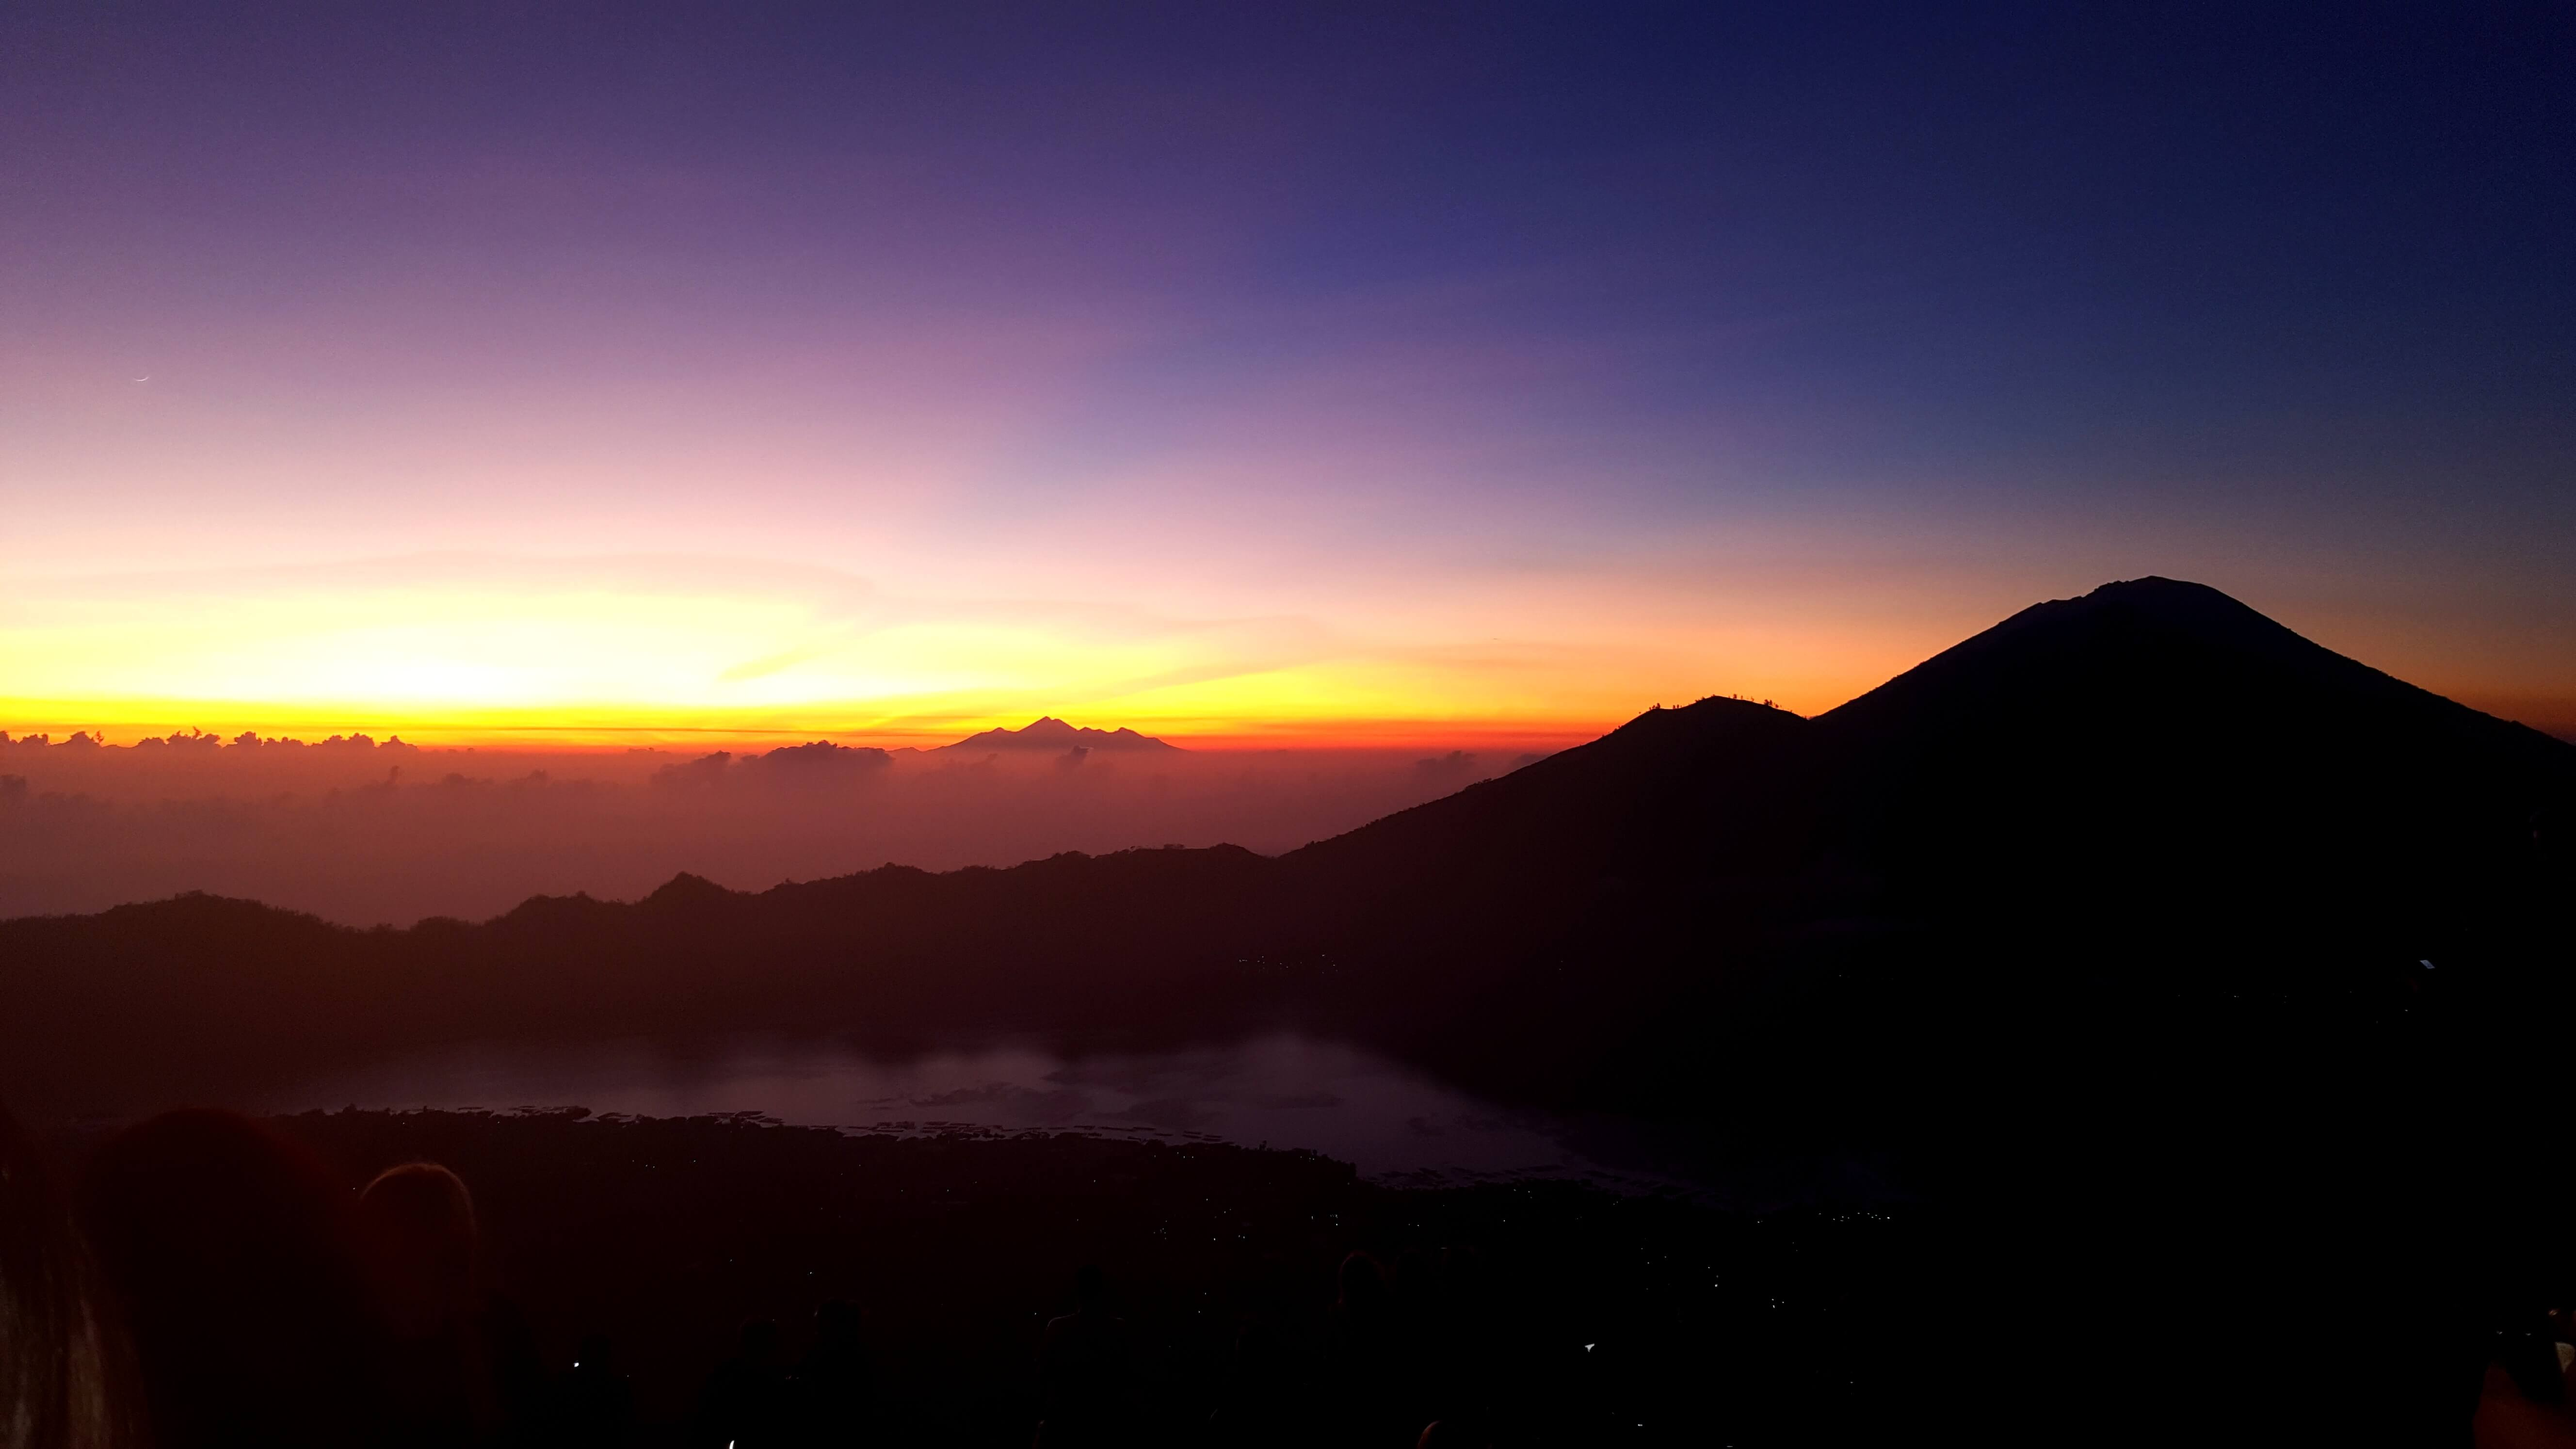 blog-Using-Travel-to-Promote-Self-Growth-mount-batur